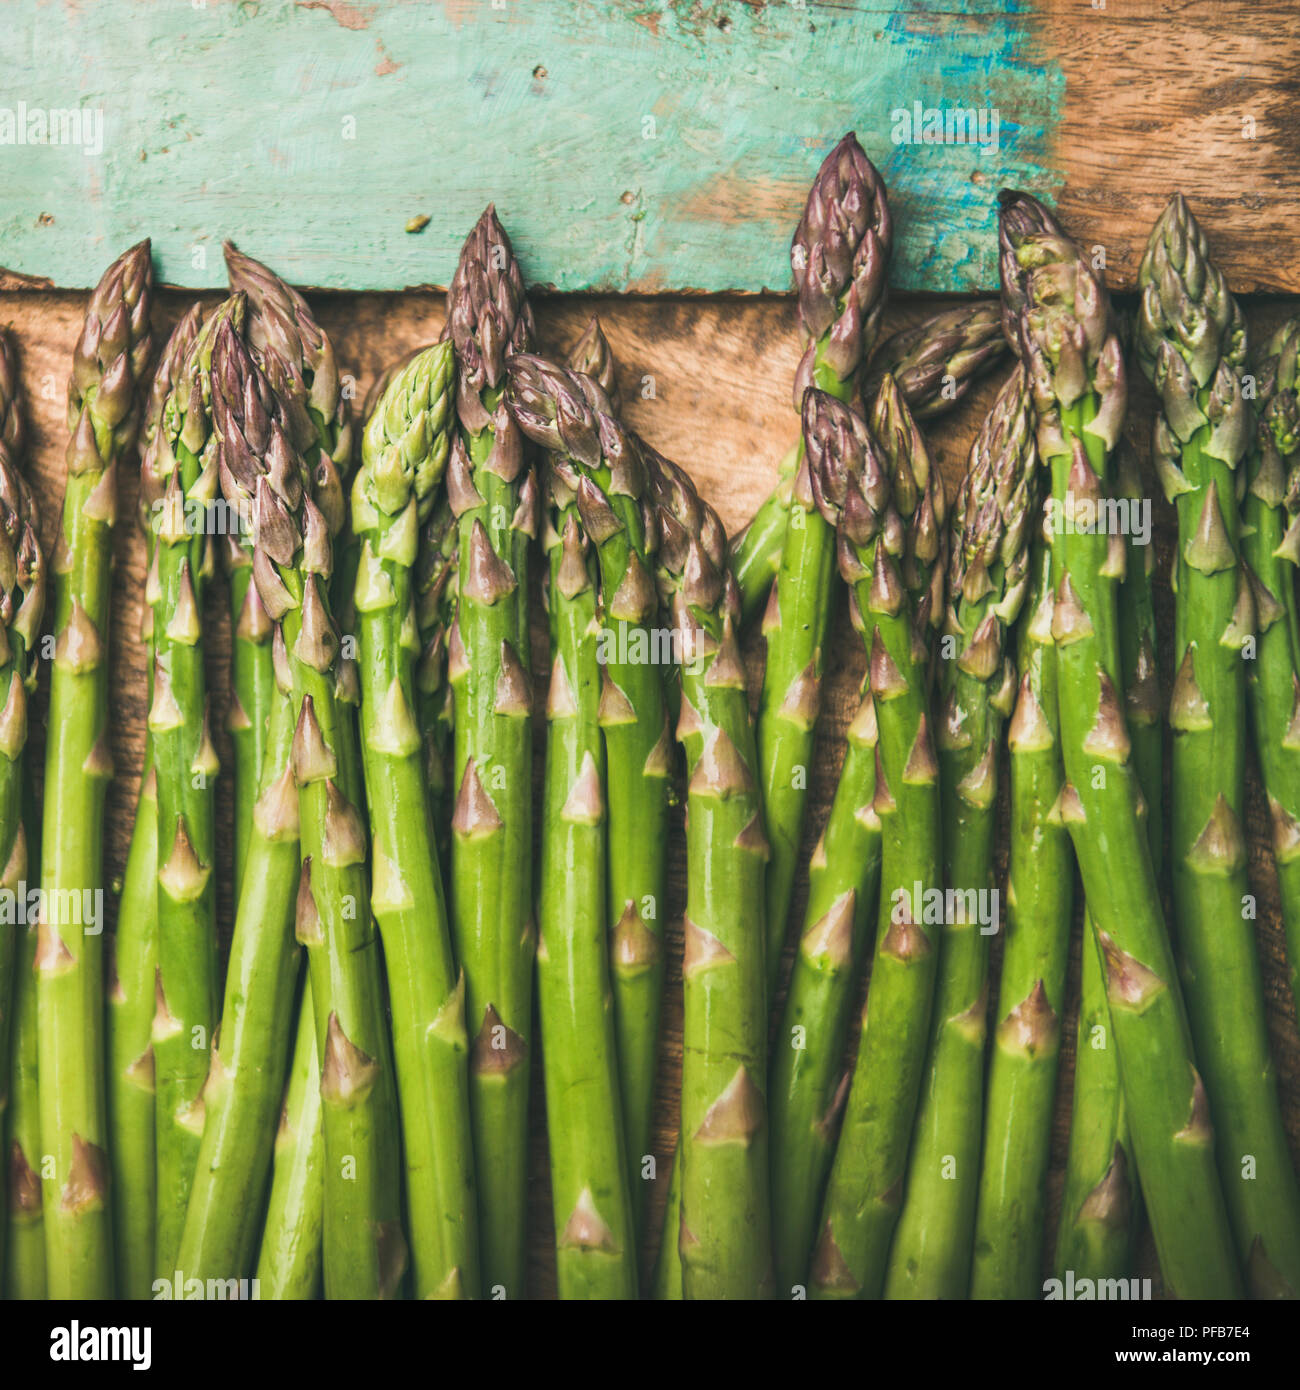 Raw uncooked green asparagus over rustic wooden tray background, square crop - Stock Image